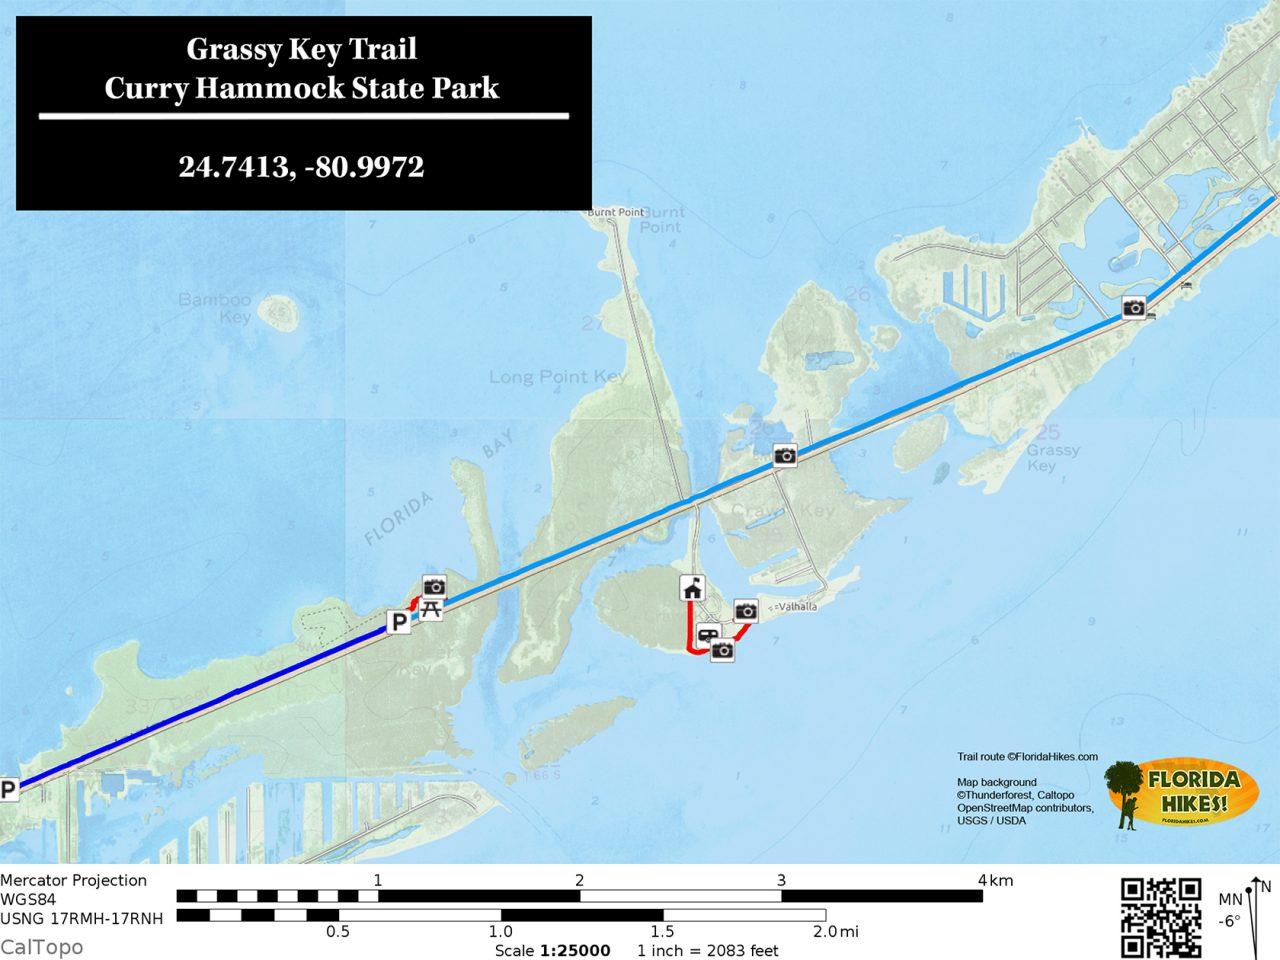 Grassy Key Trail map